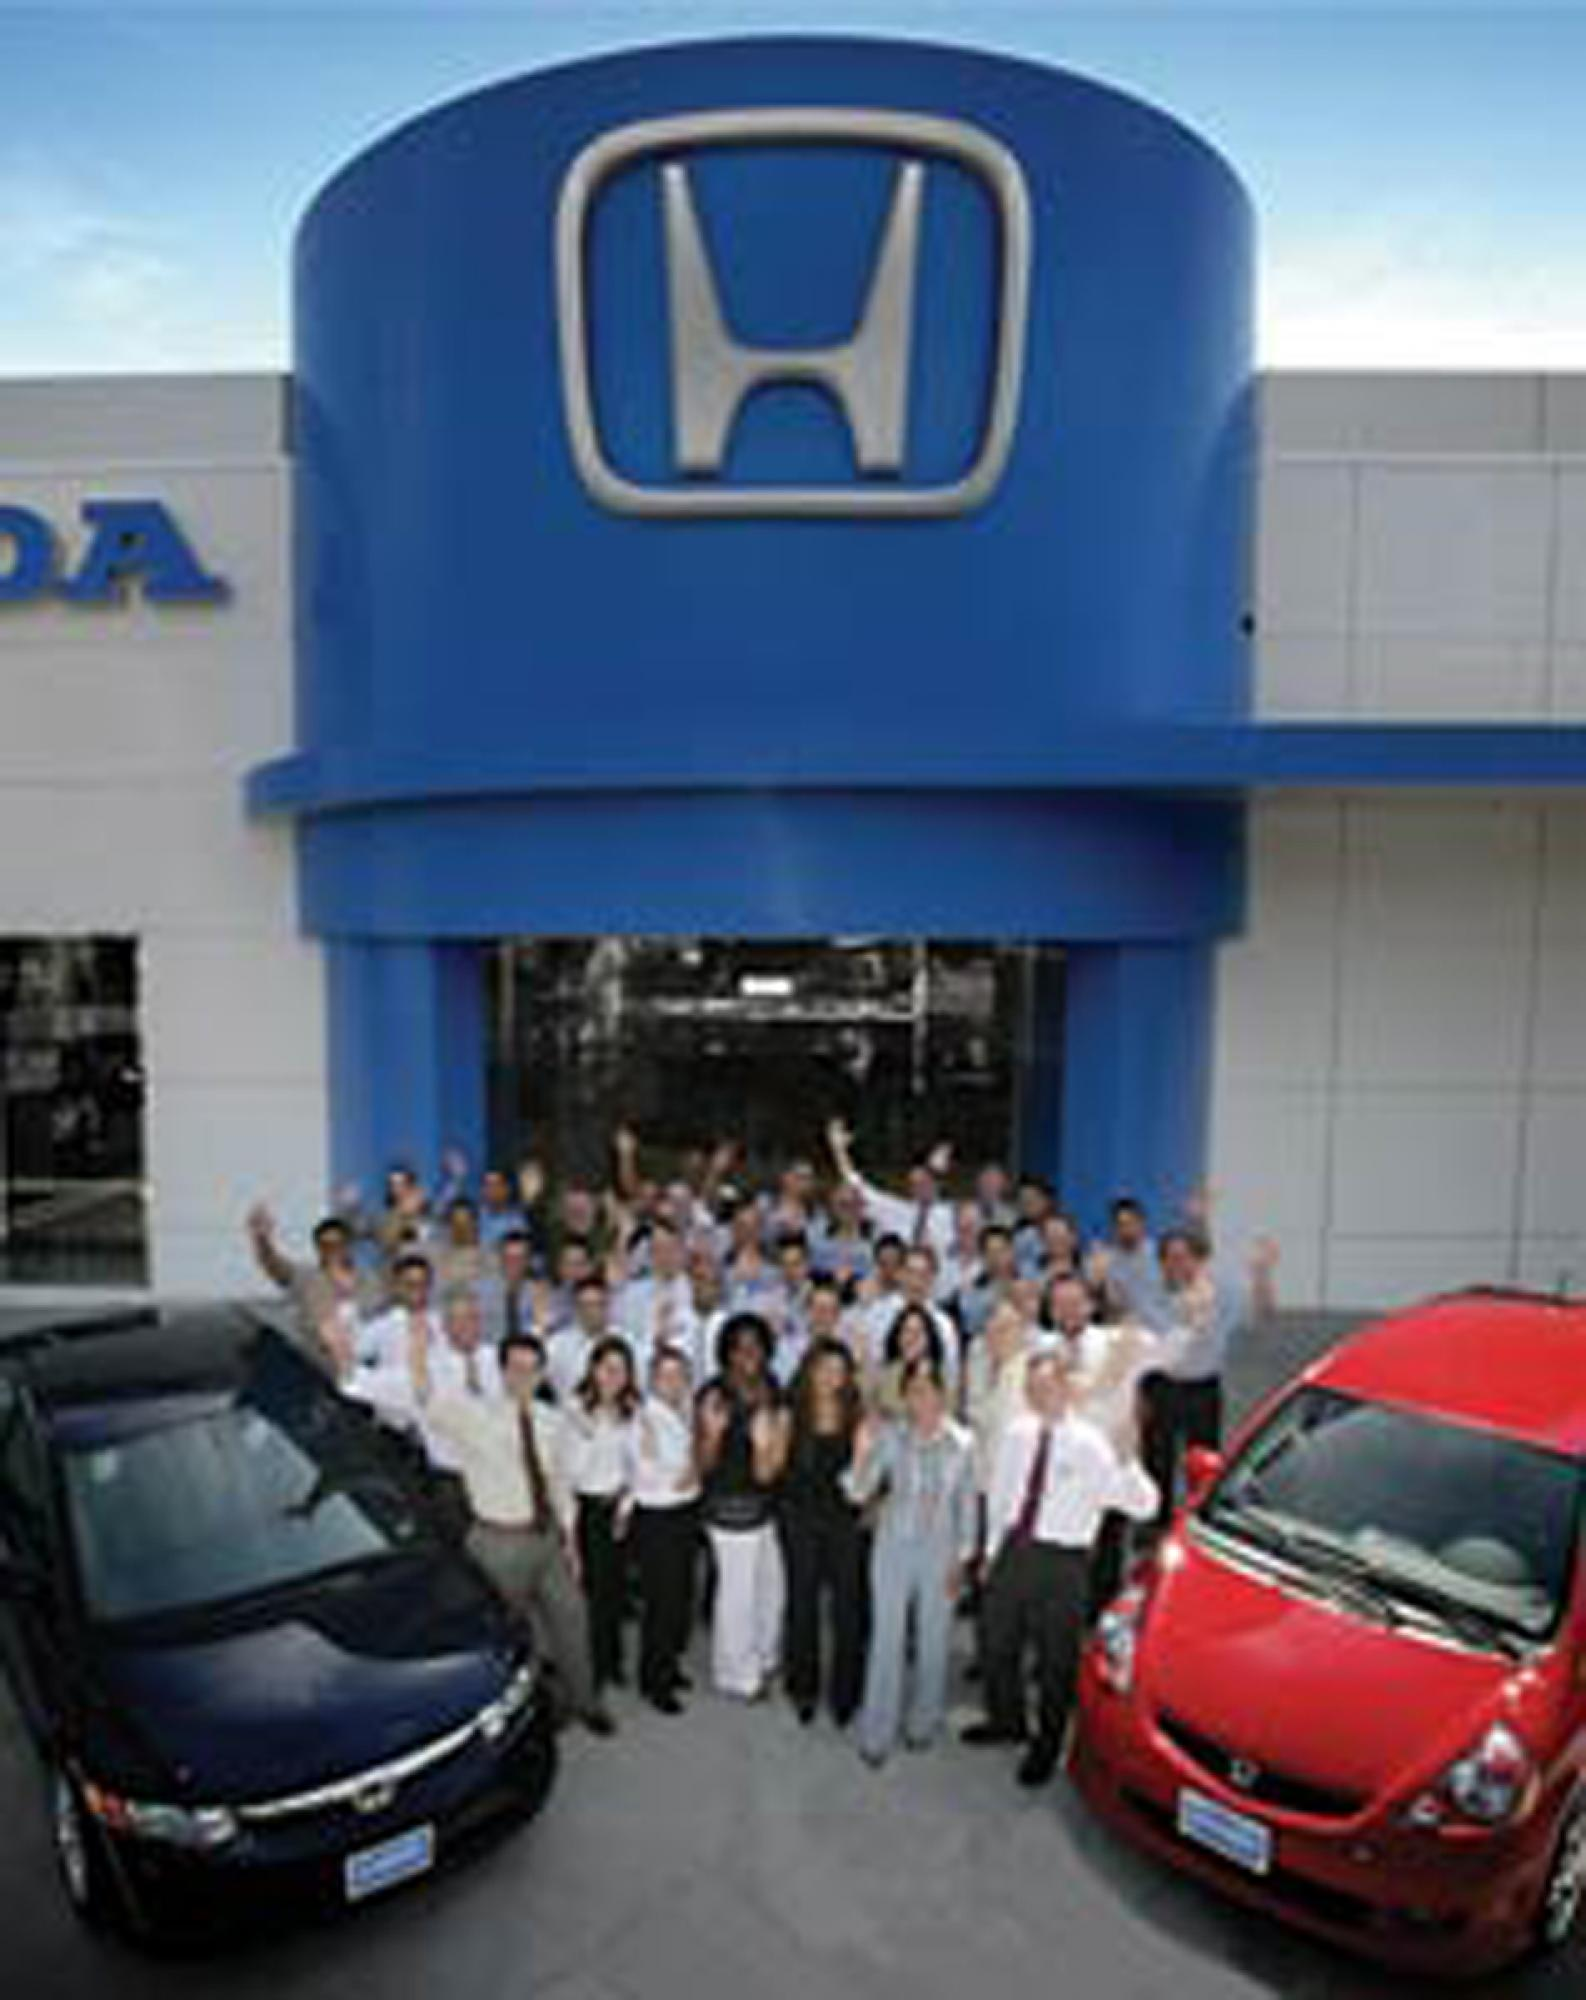 Galpin Honda Dealer Serving Los Angeles, Burbank, Hollywood, San Fernando,  Simi Valley, Northridge, North Hills, Mission Hills. Honda Sales, Service,  Parts ...